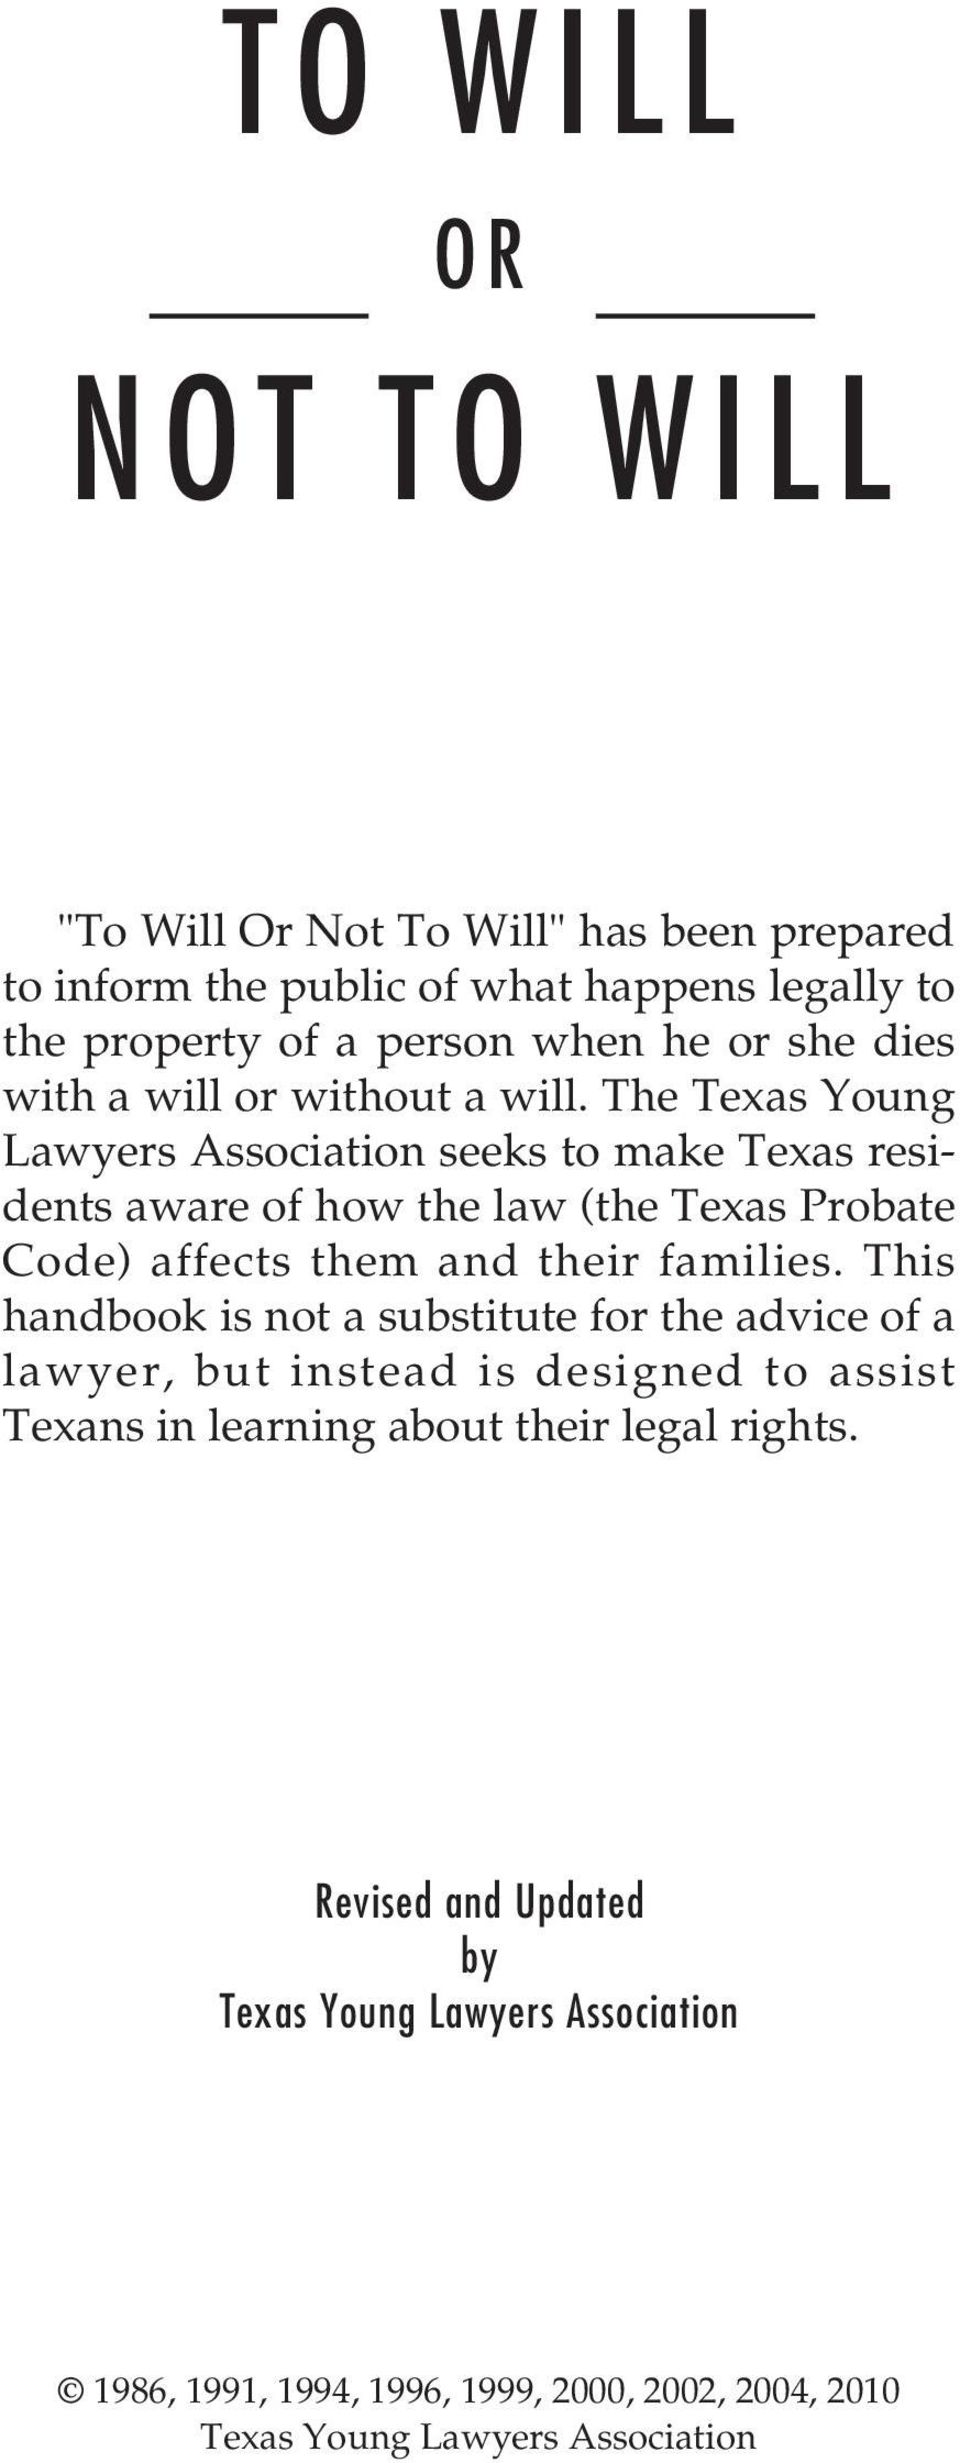 The Texas Young Lawyers Association seeks to make Texas residents aware of how the law (the Texas Probate Code) affects them and their families.